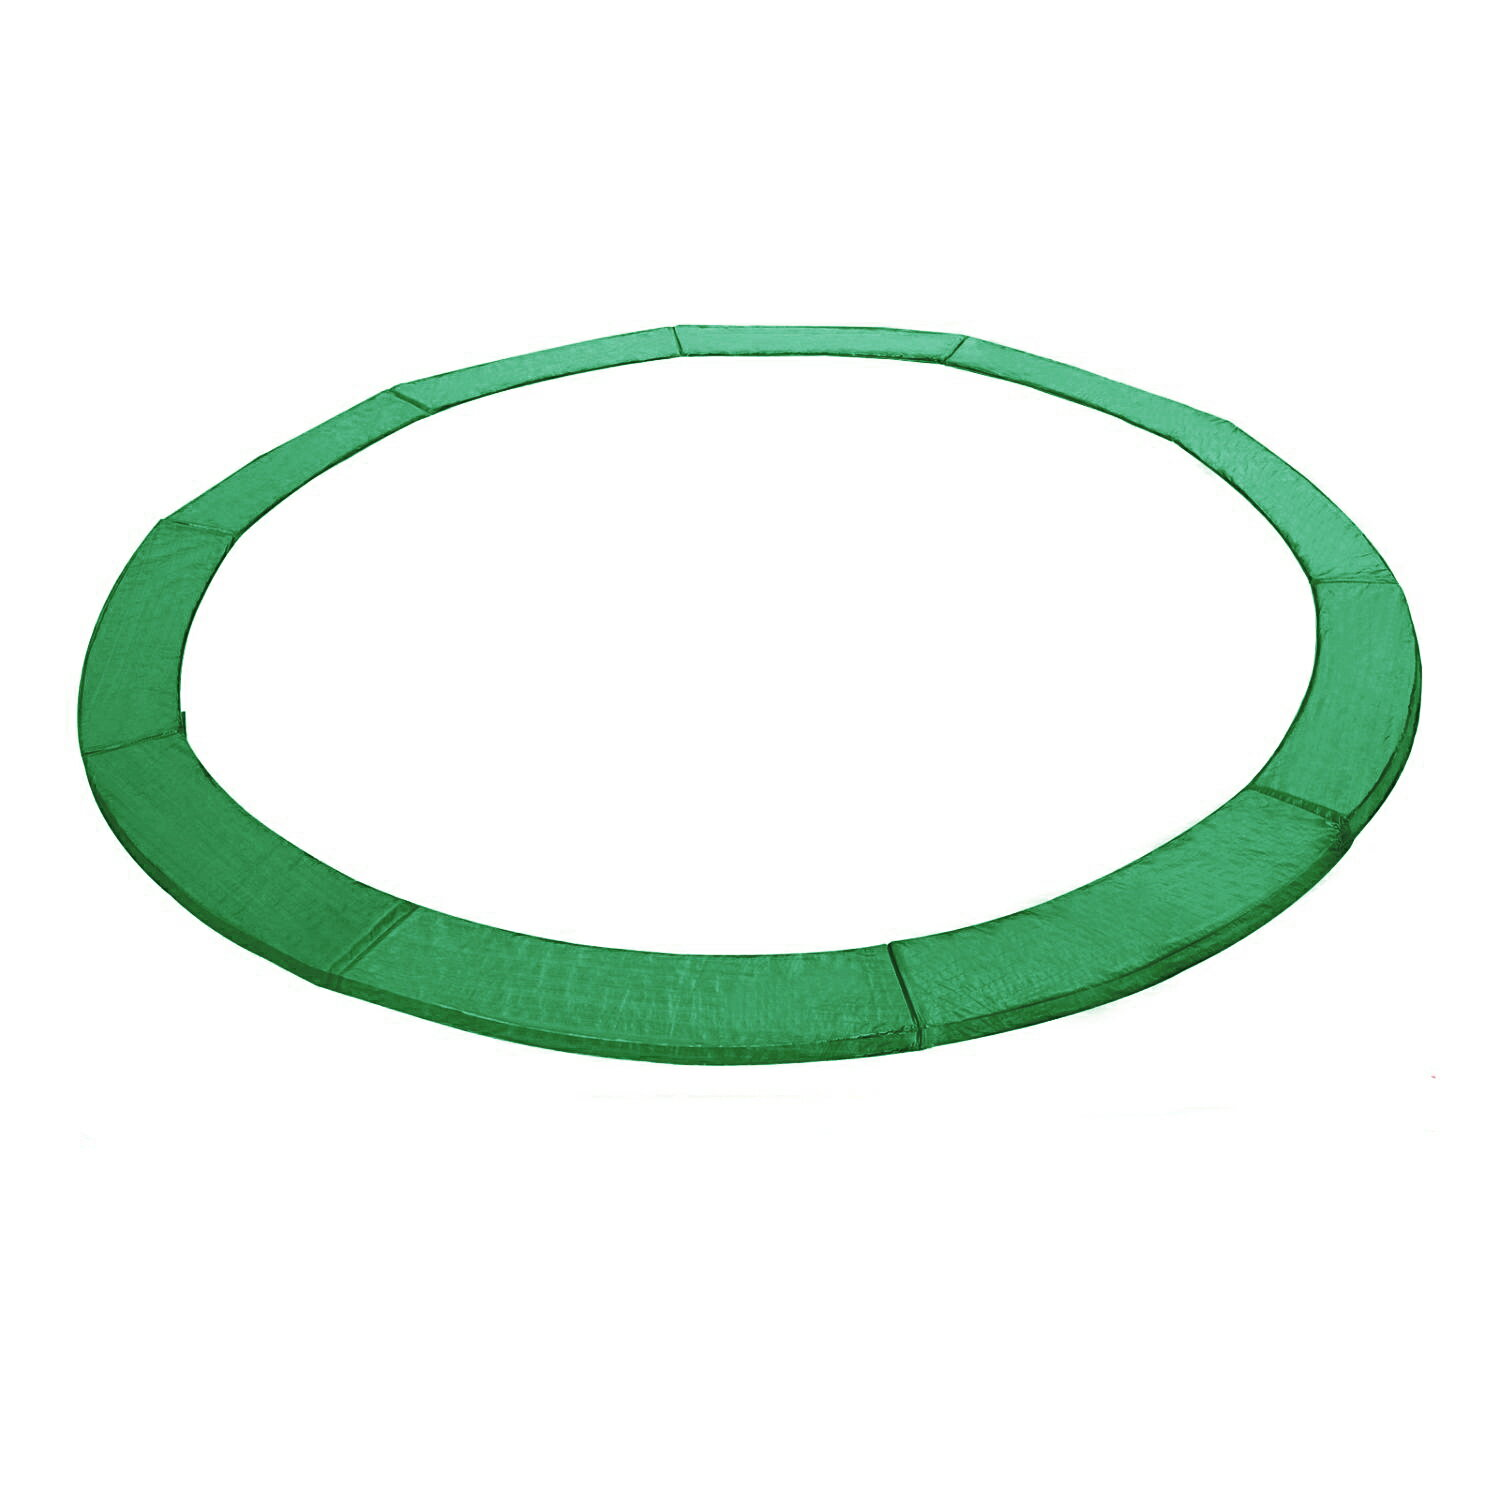 ExacMe 12' Trampoline Replacement Safety Pad Frame Spring Round Cover 1